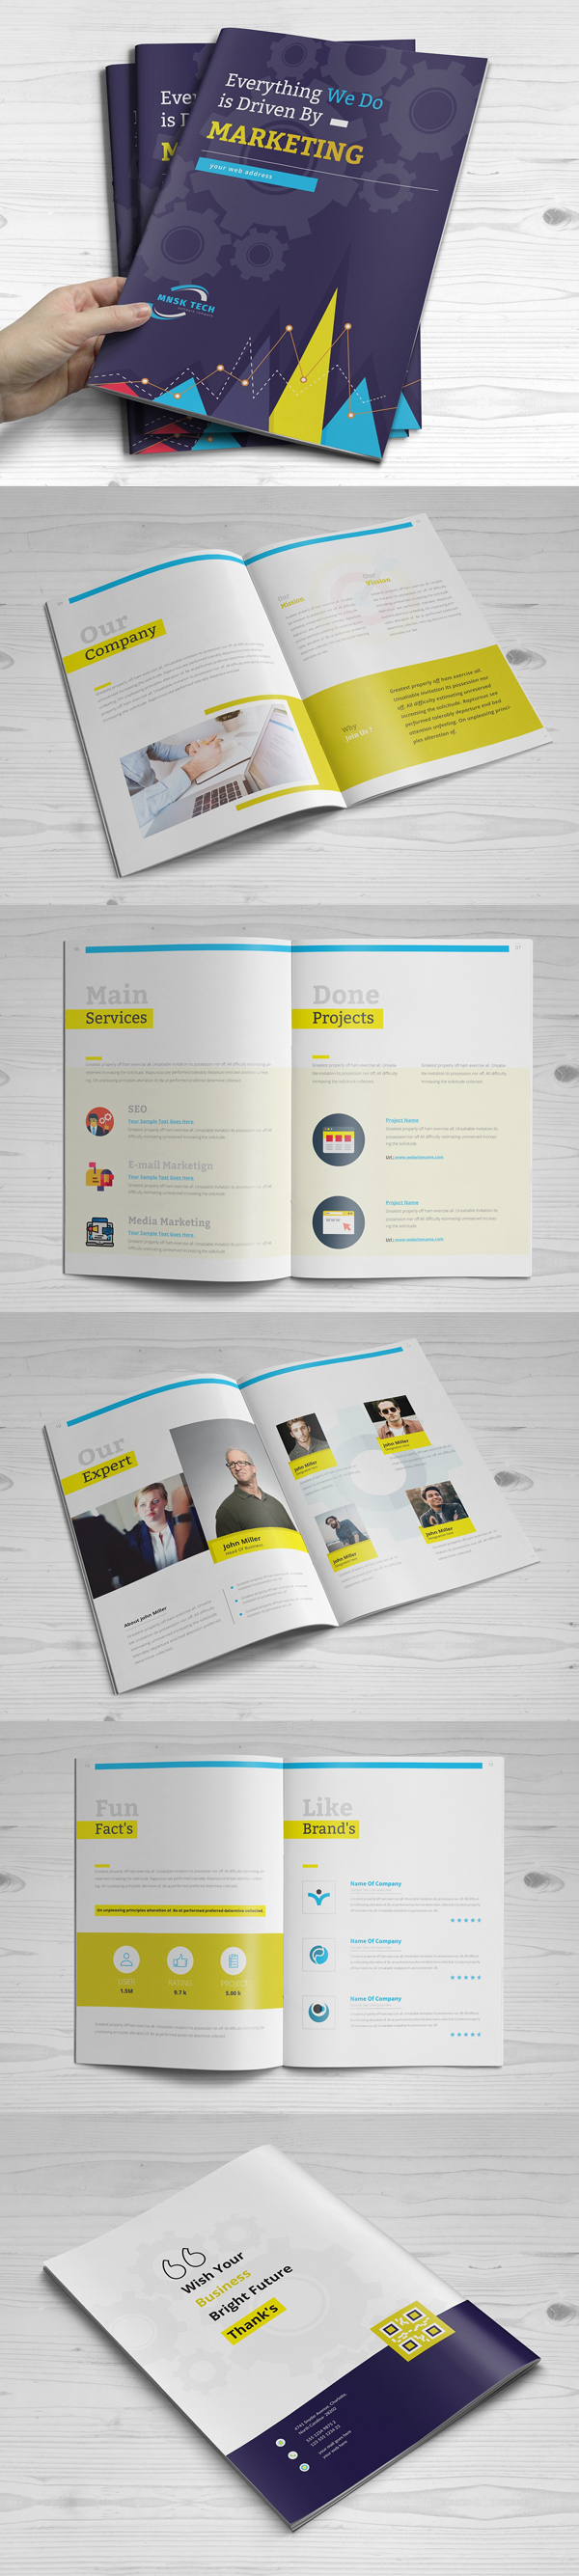 100 Professional Corporate Brochure Templates - 1